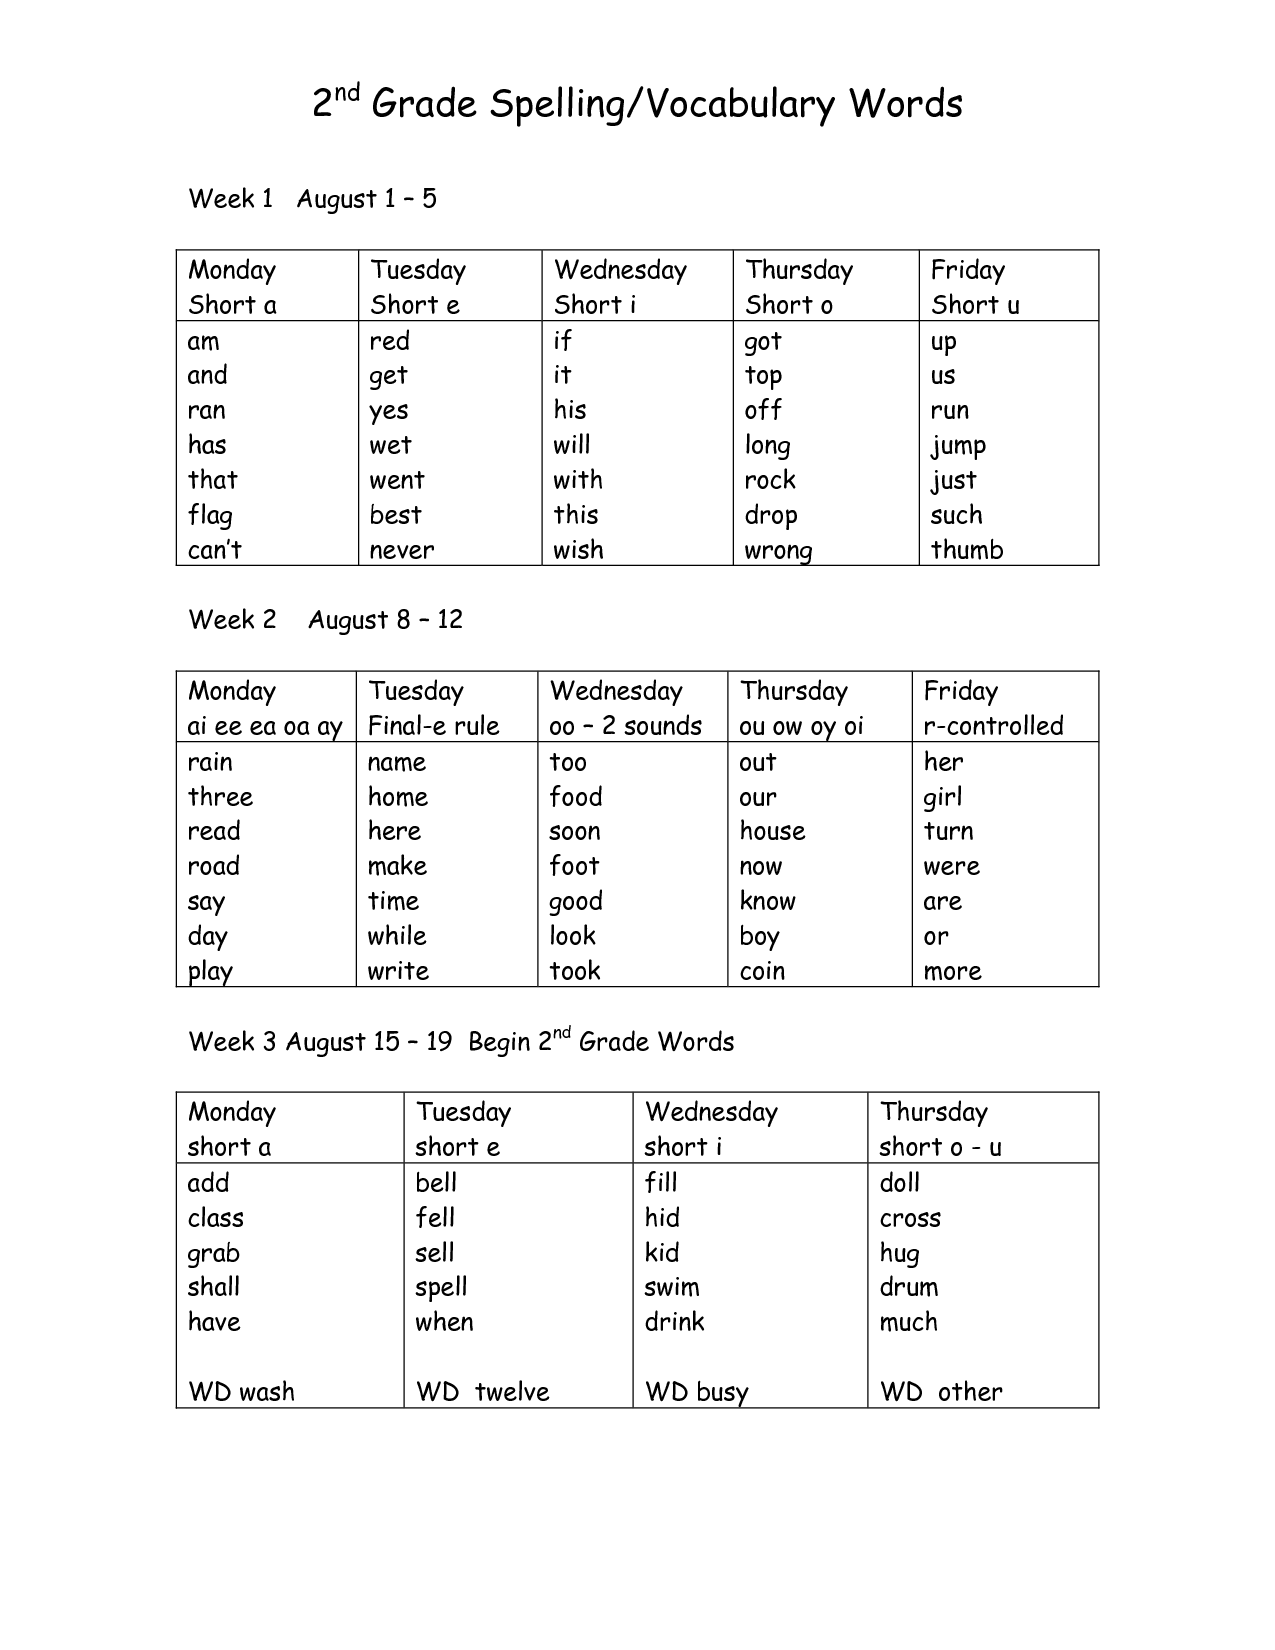 Free 2nd Grade Vocabulary Worksheet